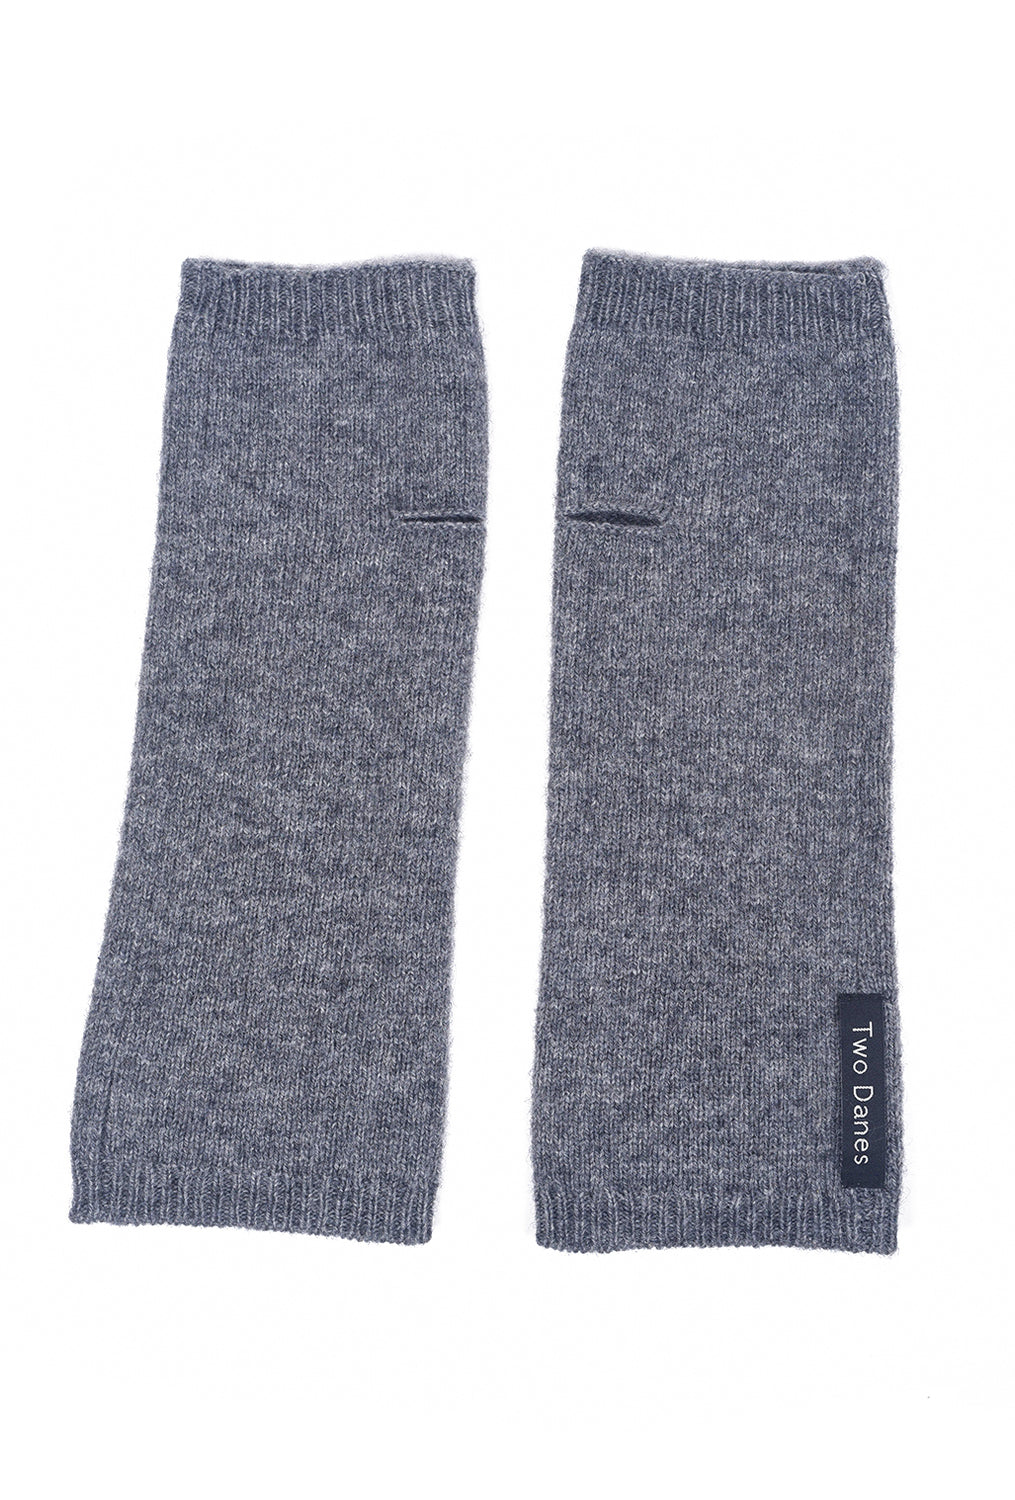 Two Danes Yumano Arm Warmers, Gray One Size Gray